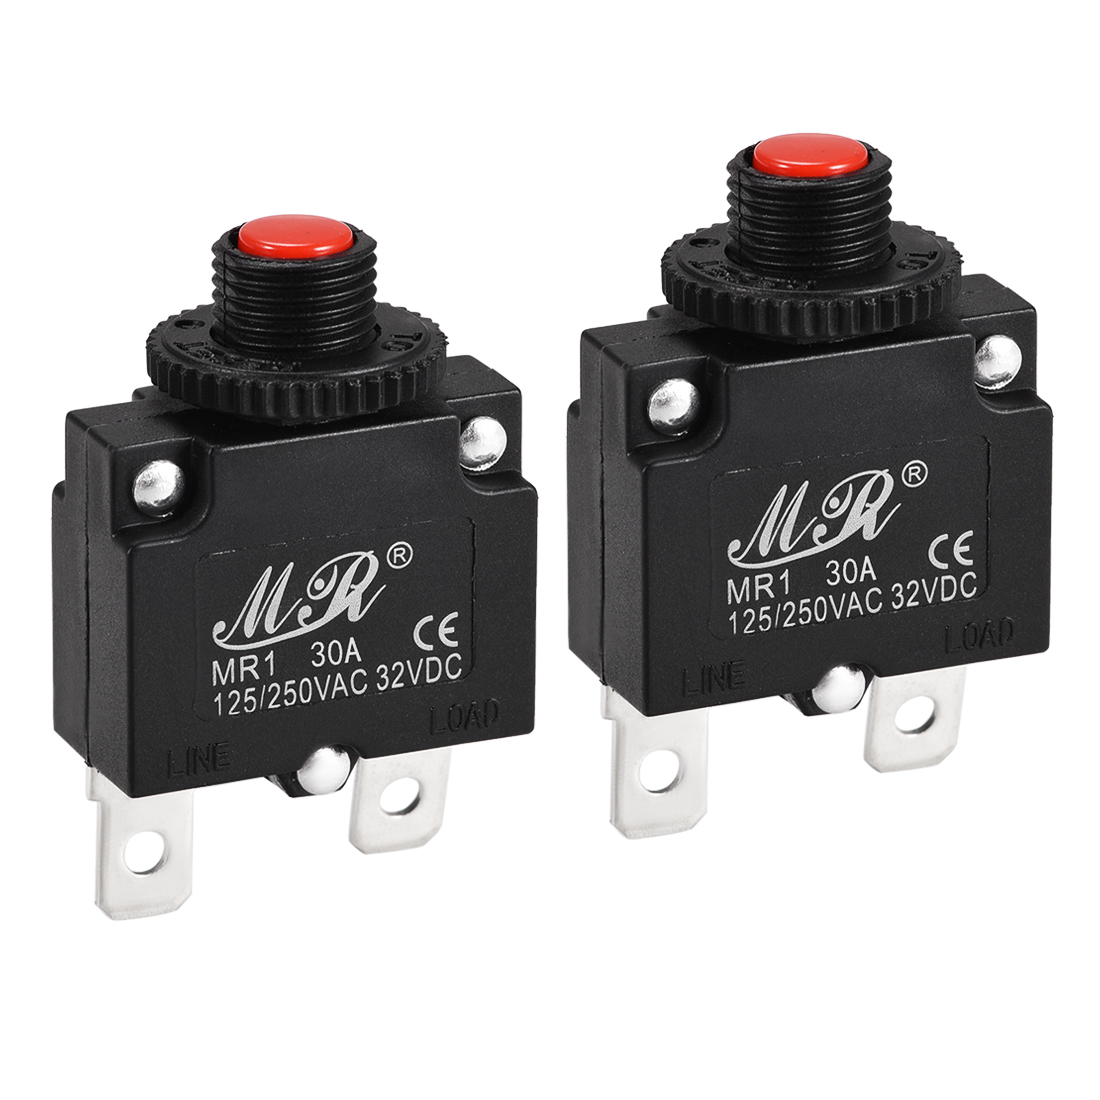 2 Pcs 30A Push Button Manual Reset Overload Protector Thermal Circuit Breakers